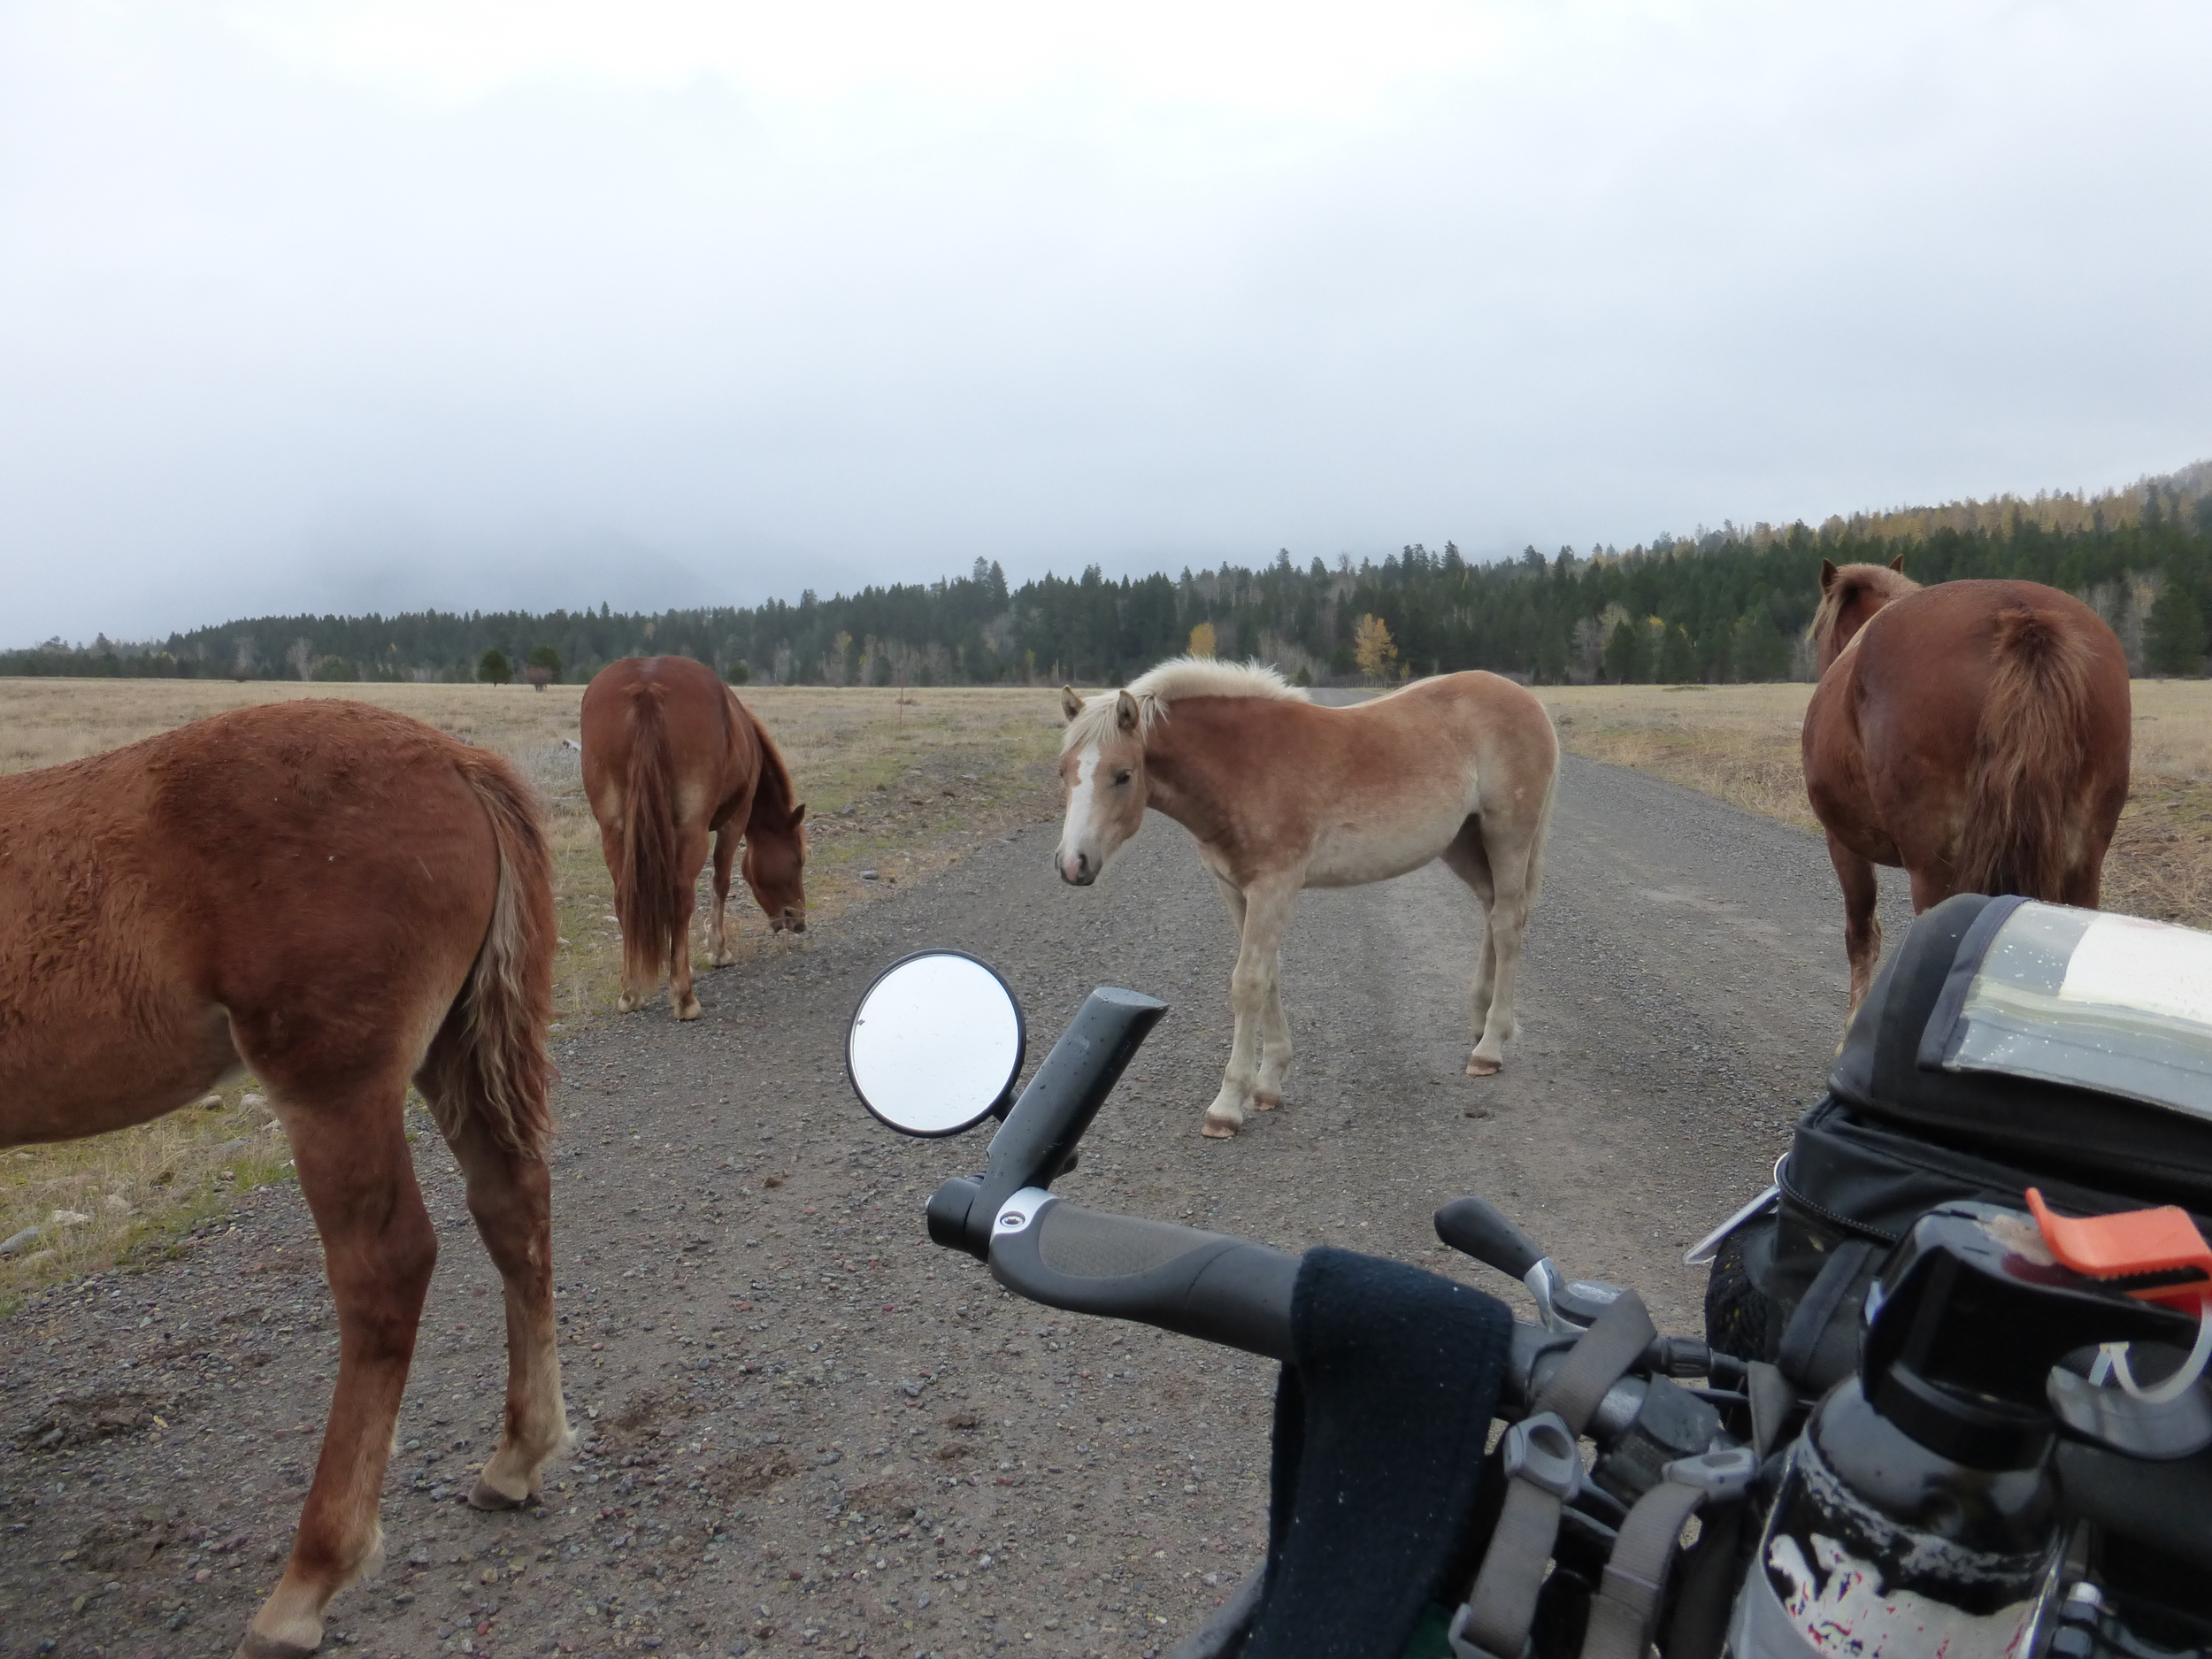 Normal   0           false   false   false     EN-US   X-NONE   X-NONE                                                                                Horses are curious animals, they would never miss an opportunity to check out a passer by. Those guys surrounded me in no time and began trying to chew on my gear! My green jacket, my panniers and one tried to take a bite out of my mirror.